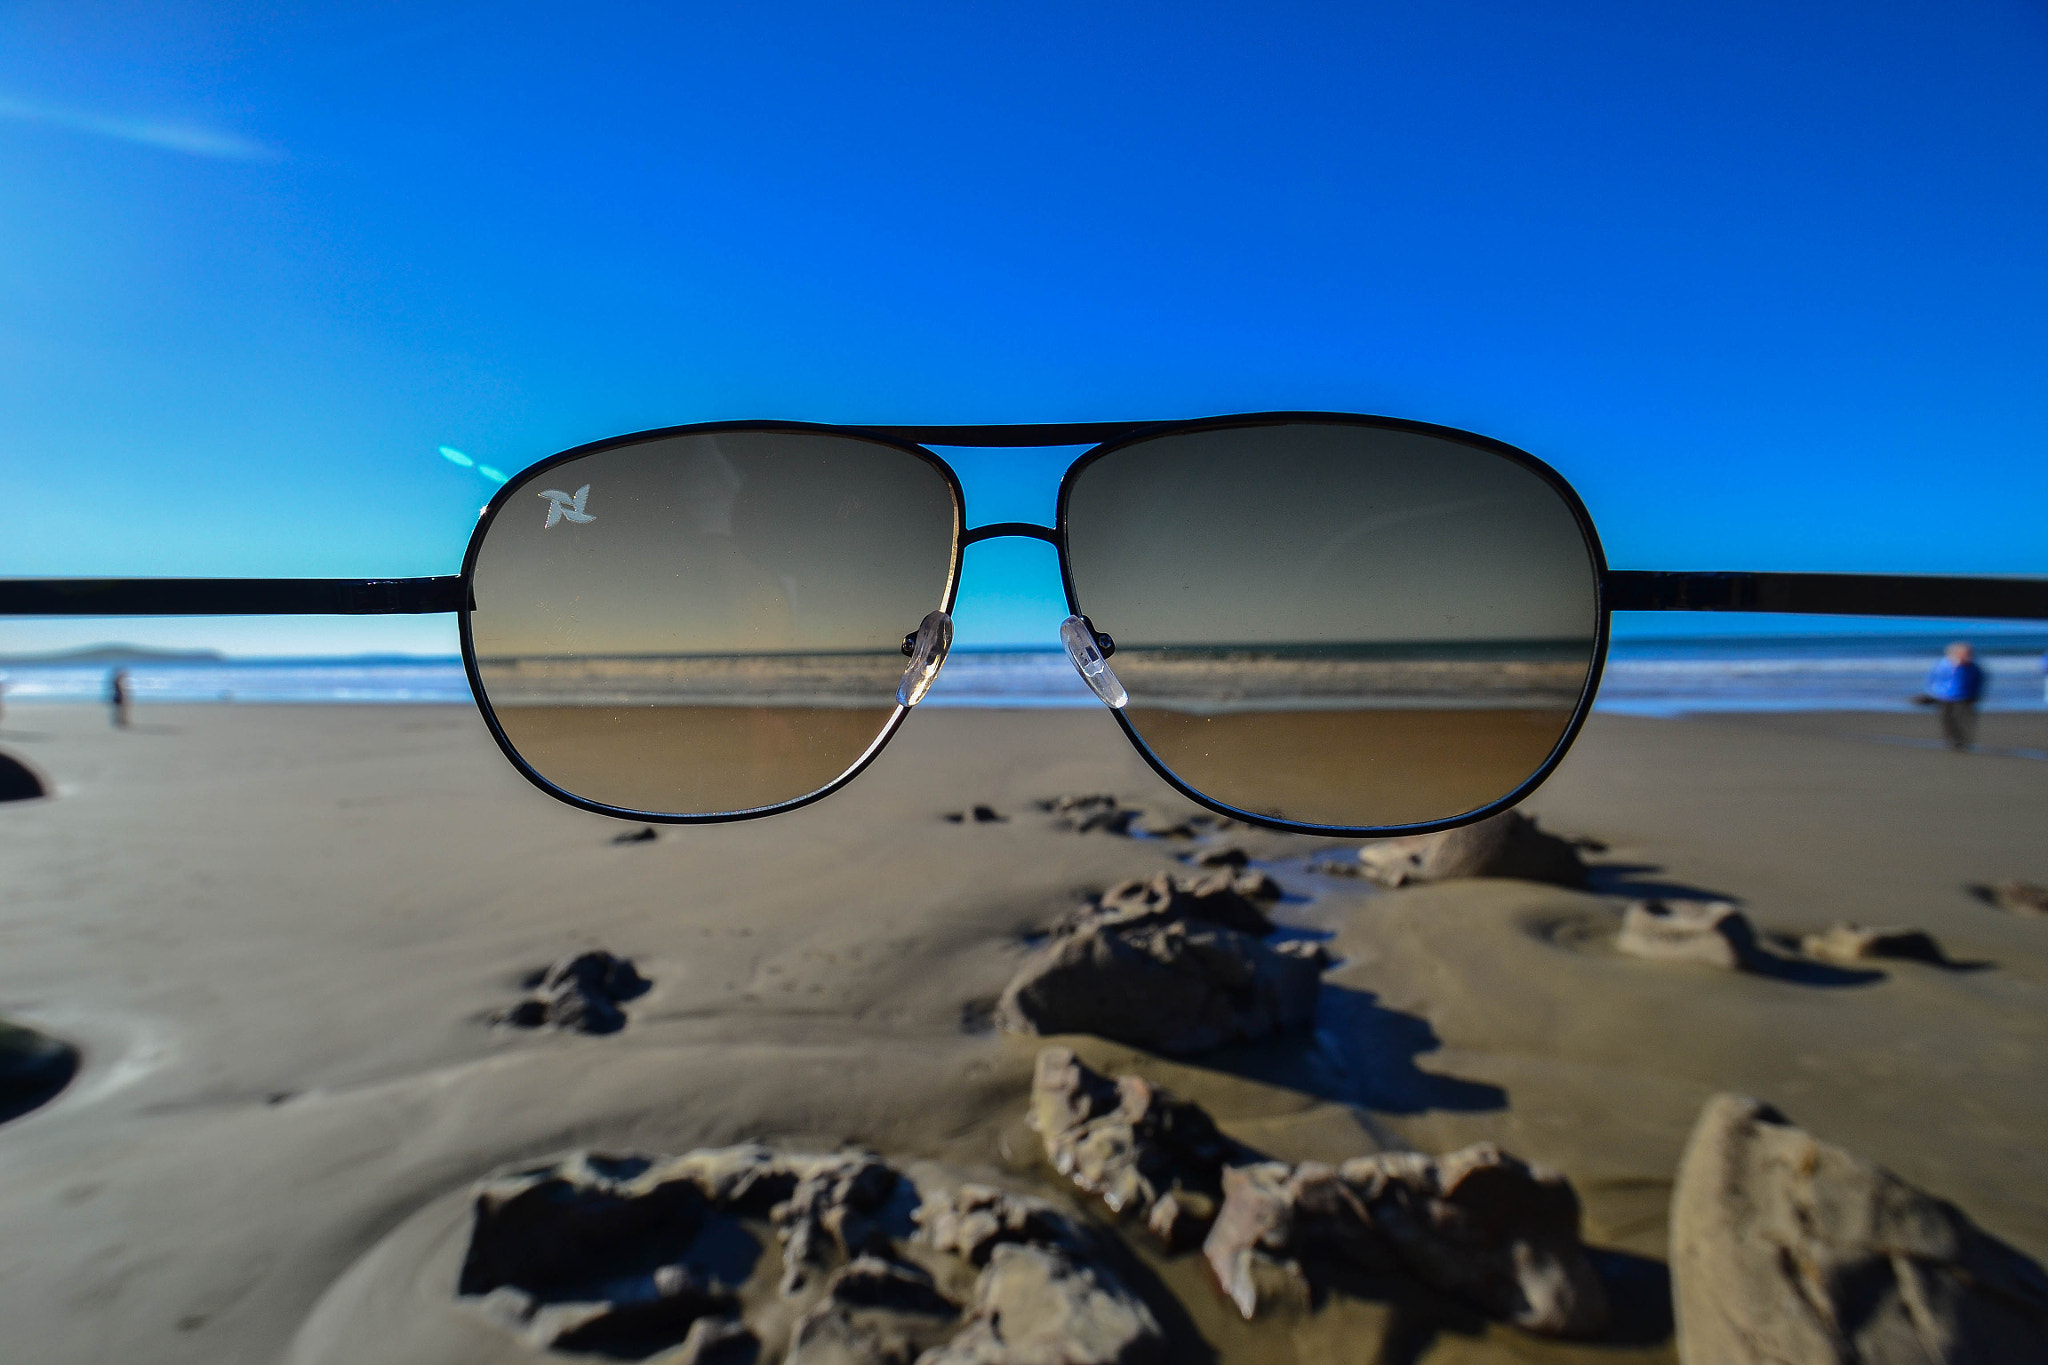 Photograph Aviator Mode Activated by Farred Burn on 500px